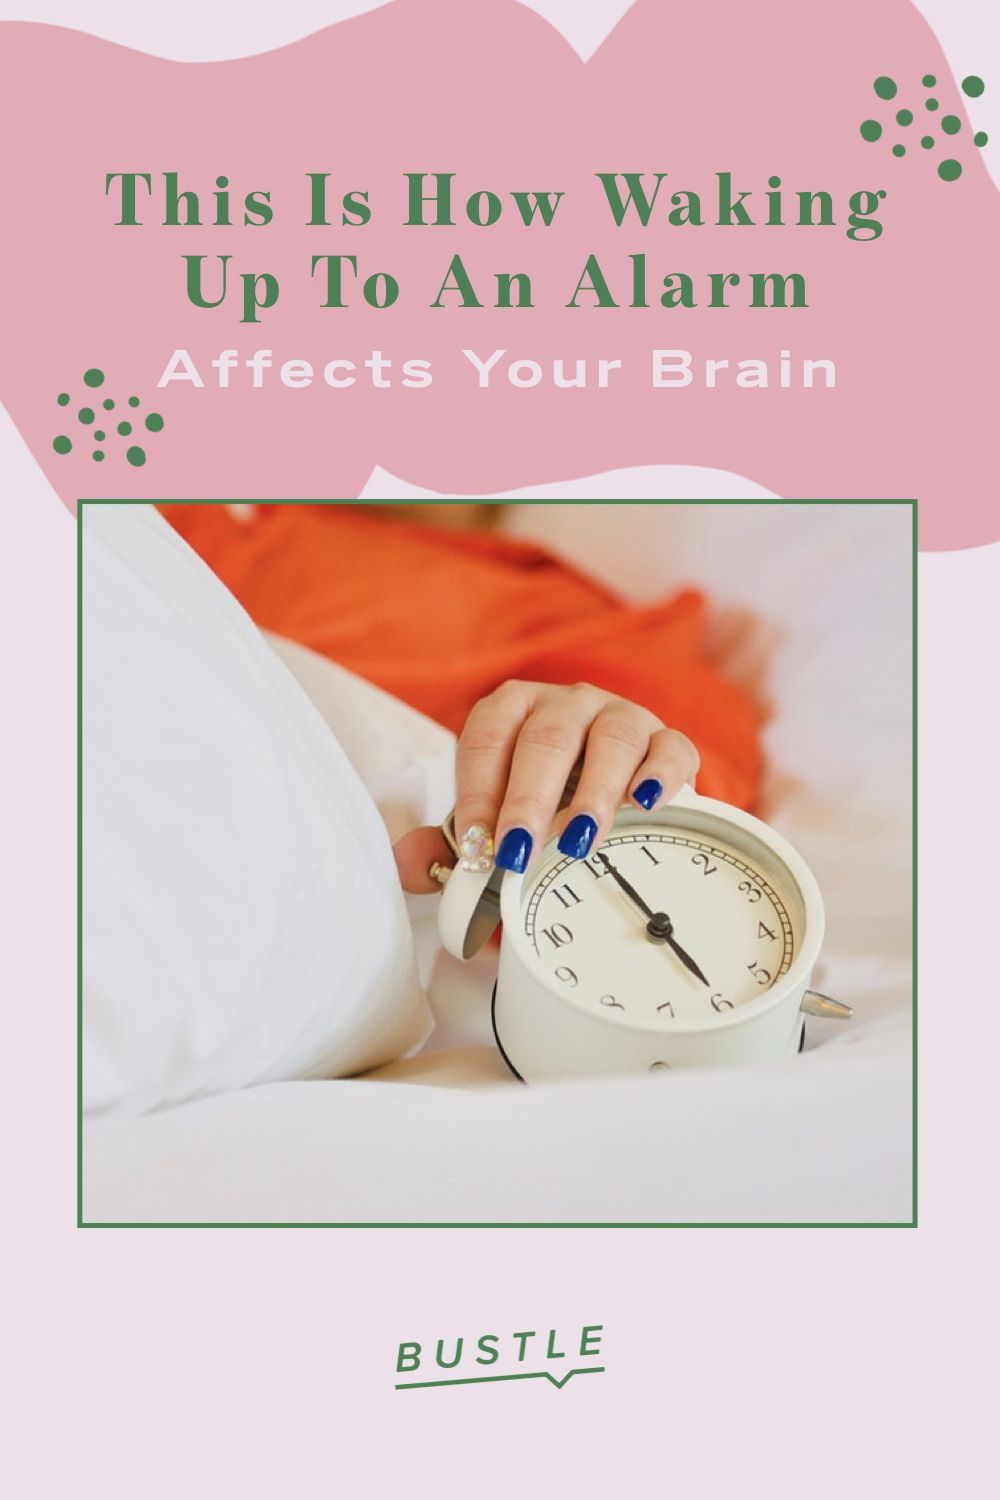 This Is How Waking Up To An Alarm Affects Your Brain